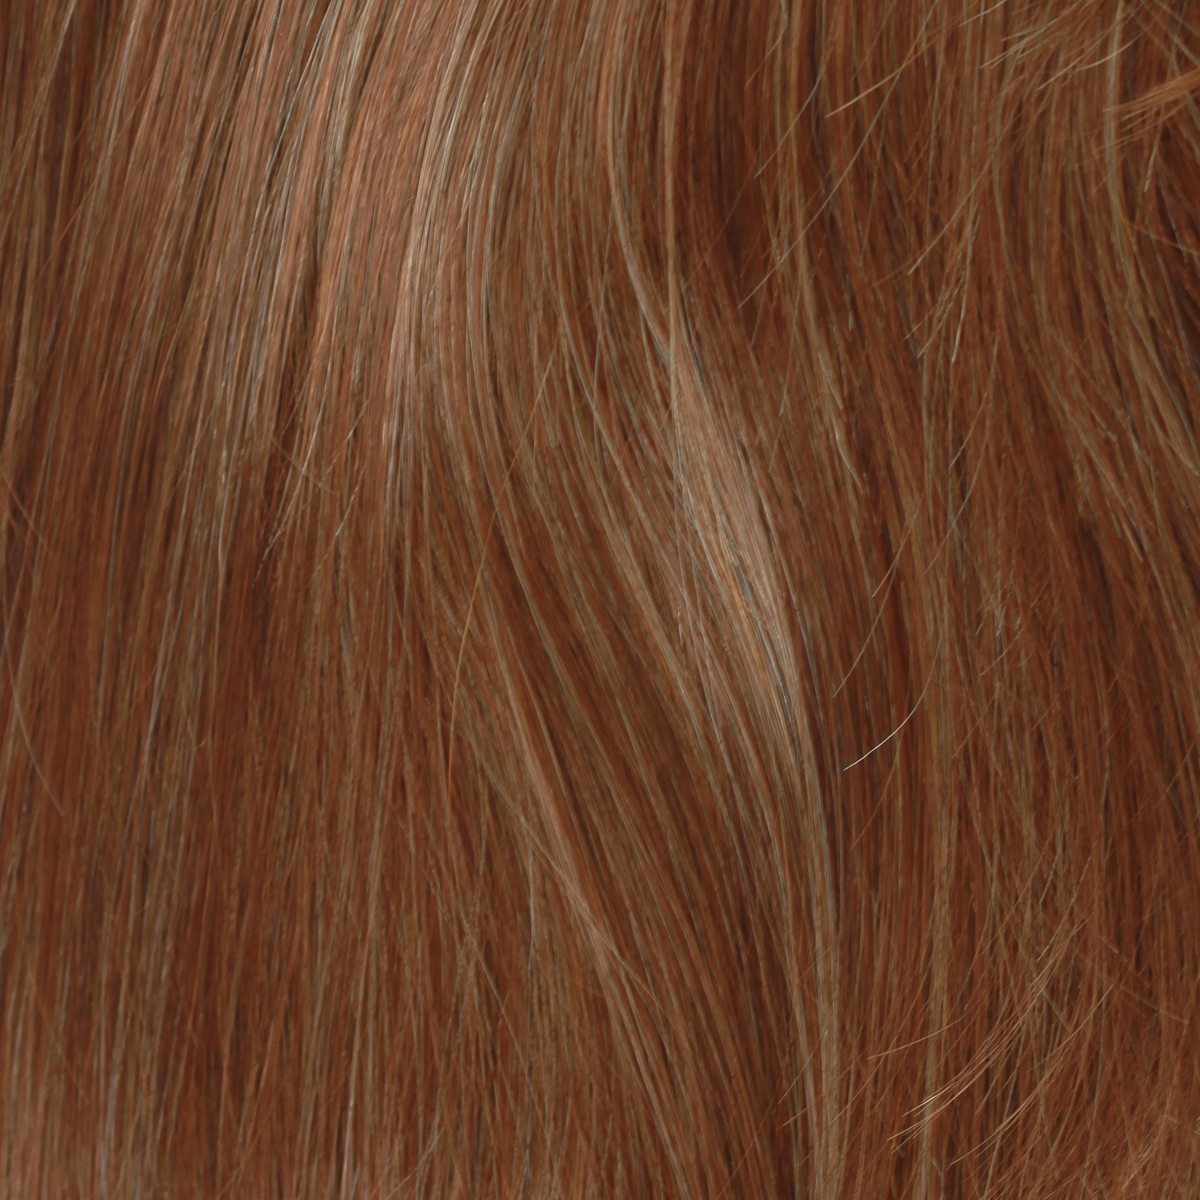 Admiration Wig Natural Image - image Caramel-Glow-crop on https://purewigs.com